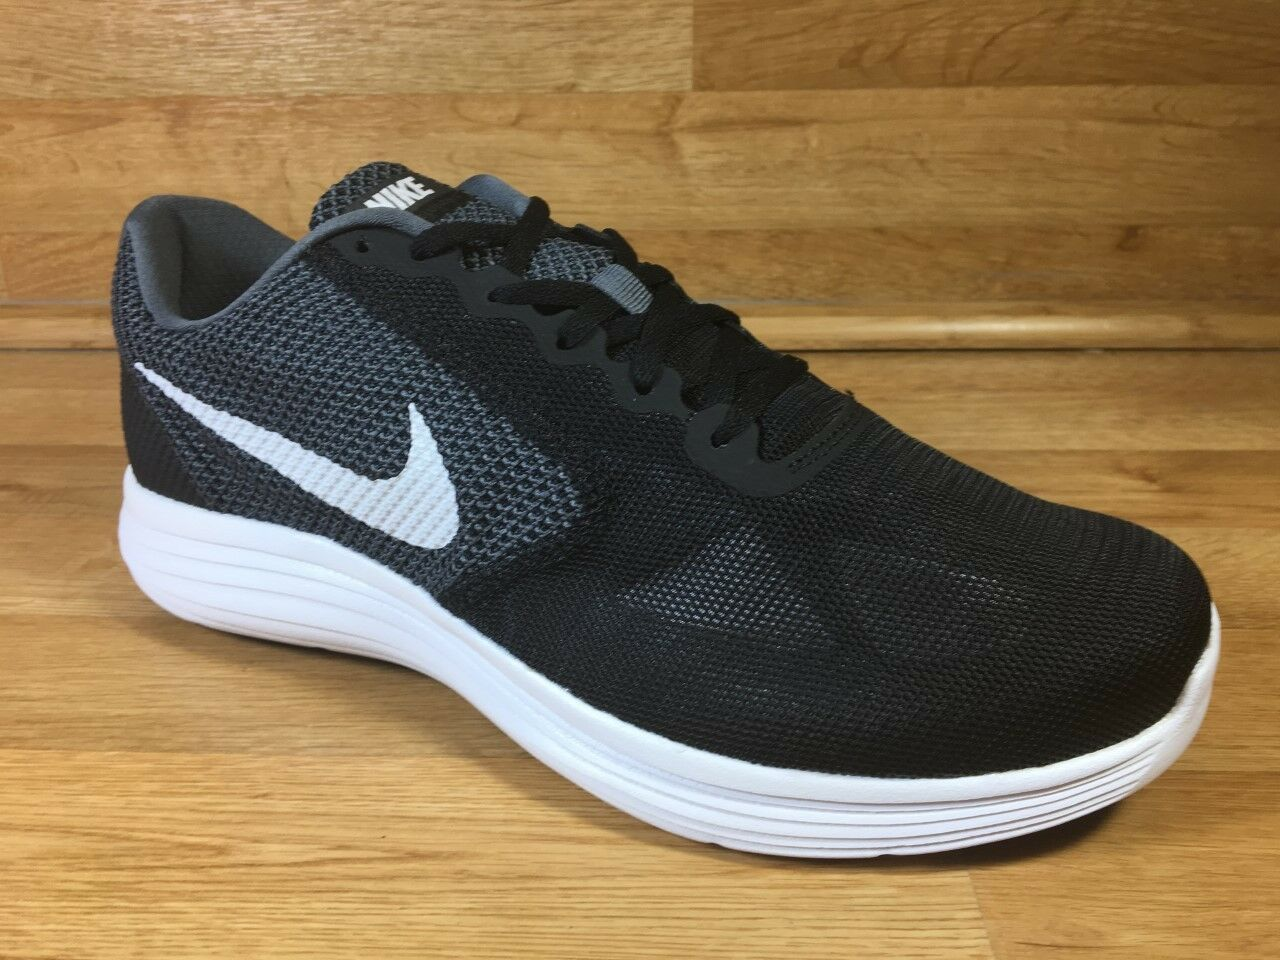 NIKE REVOLUTION 3 / DARK GREY - WHITE - BLACK / Uomo 11, 11.5, 12, 13 WIDE 4E